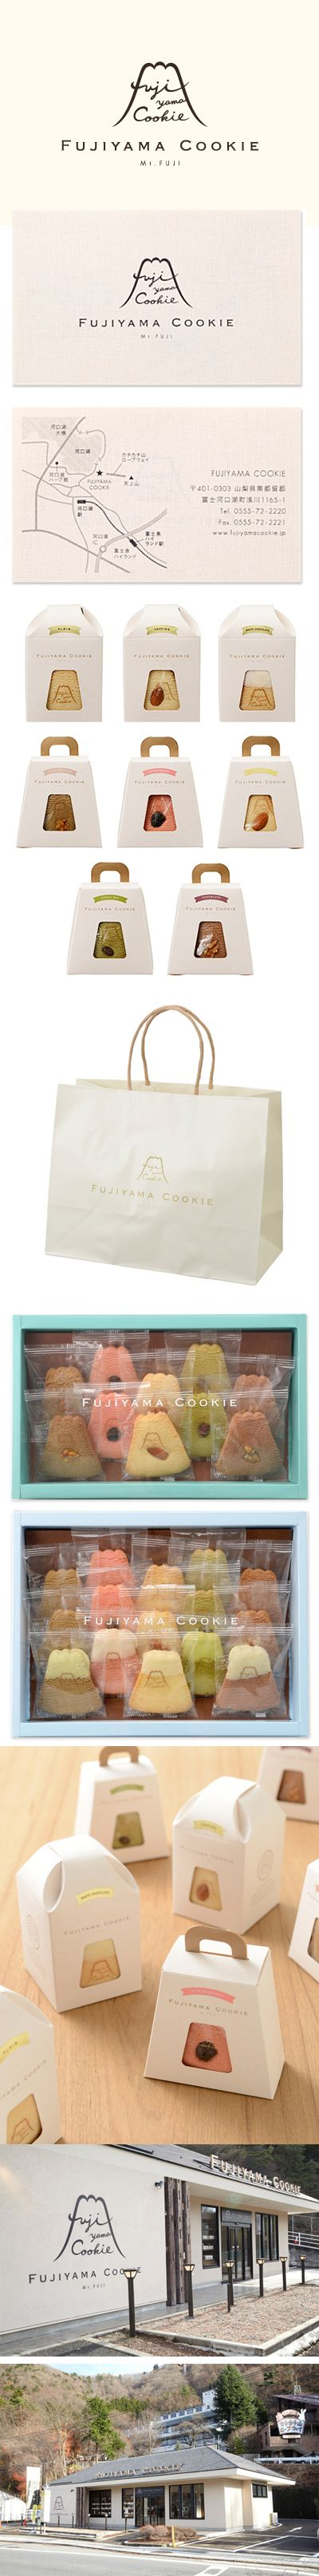 Fujiyama cookie #identity #packaging #branding